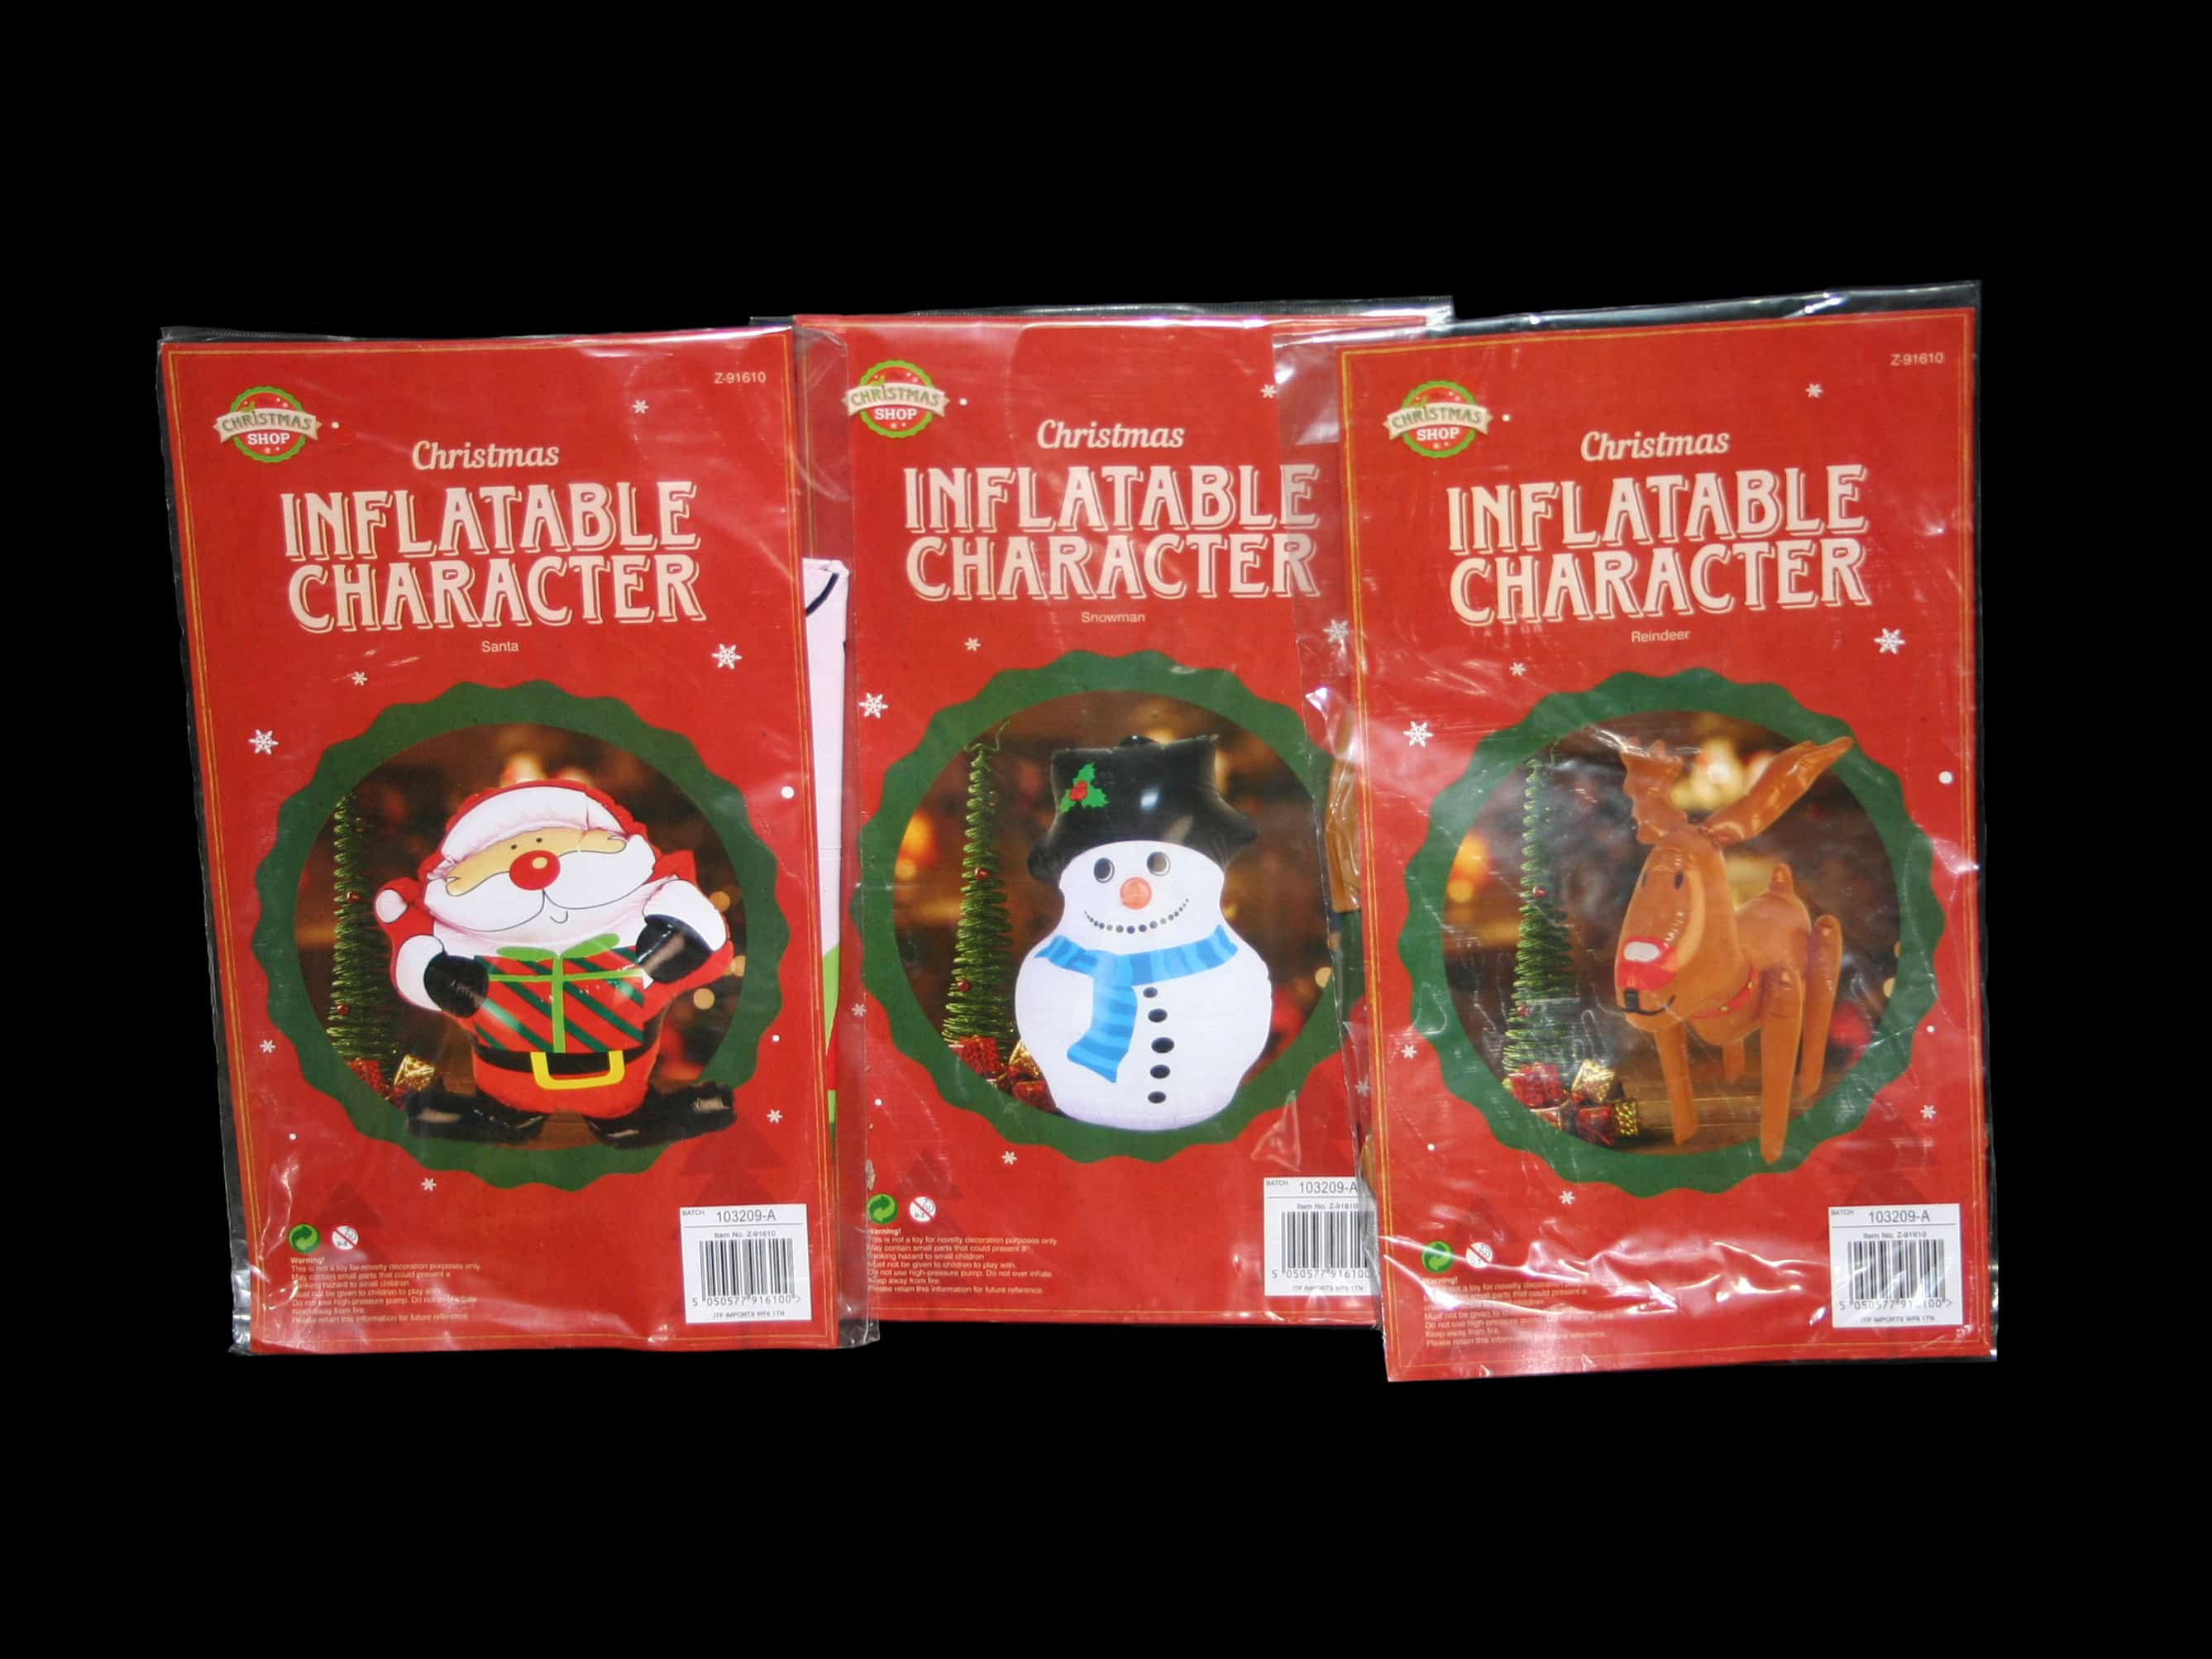 65cm tall inflatable Christmas characters, available as Santa, Reindeer or Snowman